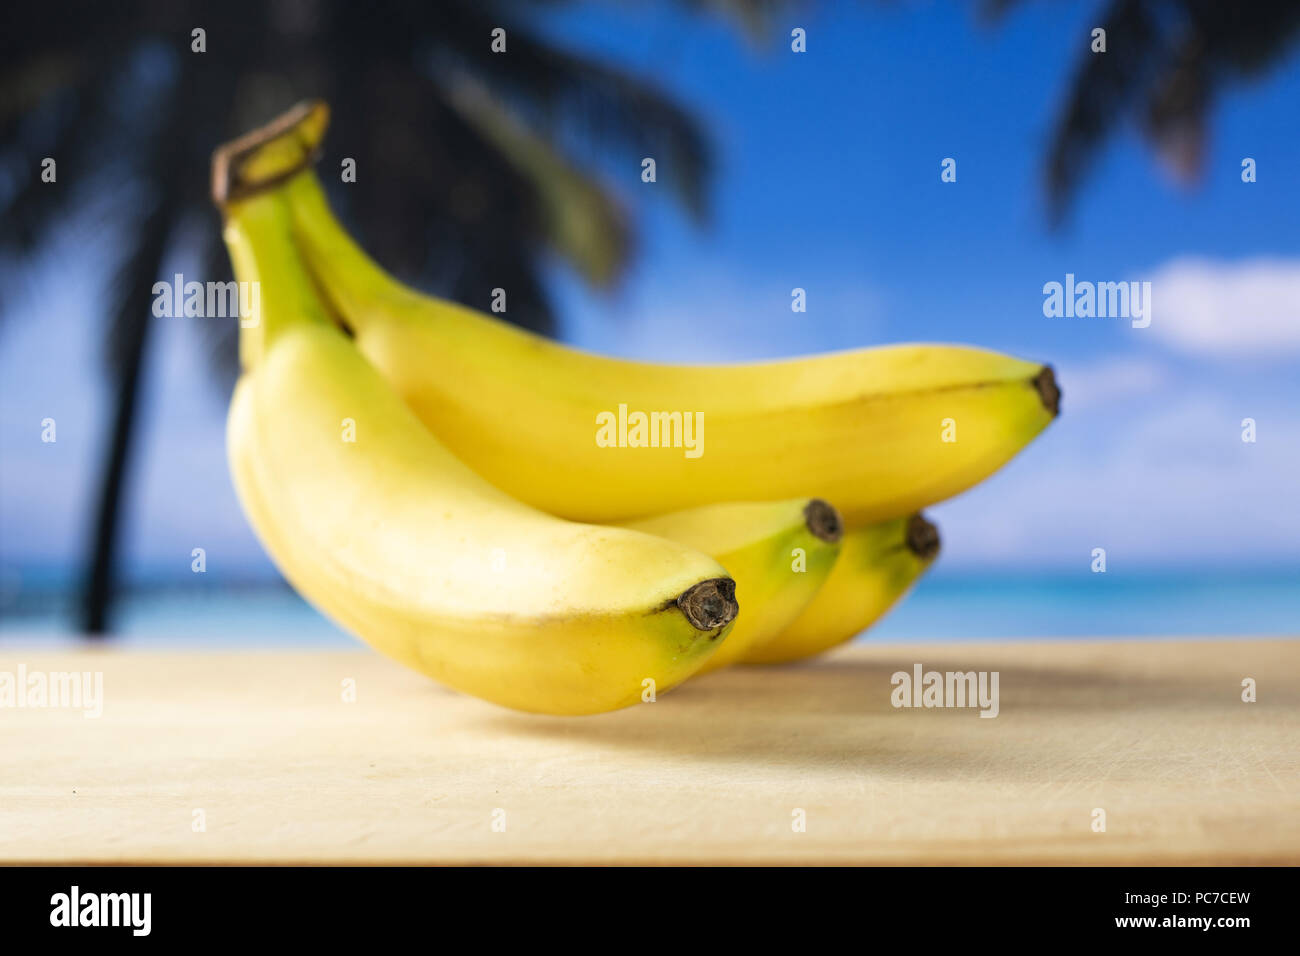 Five Photographs Of Banana In Seach Of >> Group Of Five Whole Fresh Yellow Banana One Cluster With Palm Trees